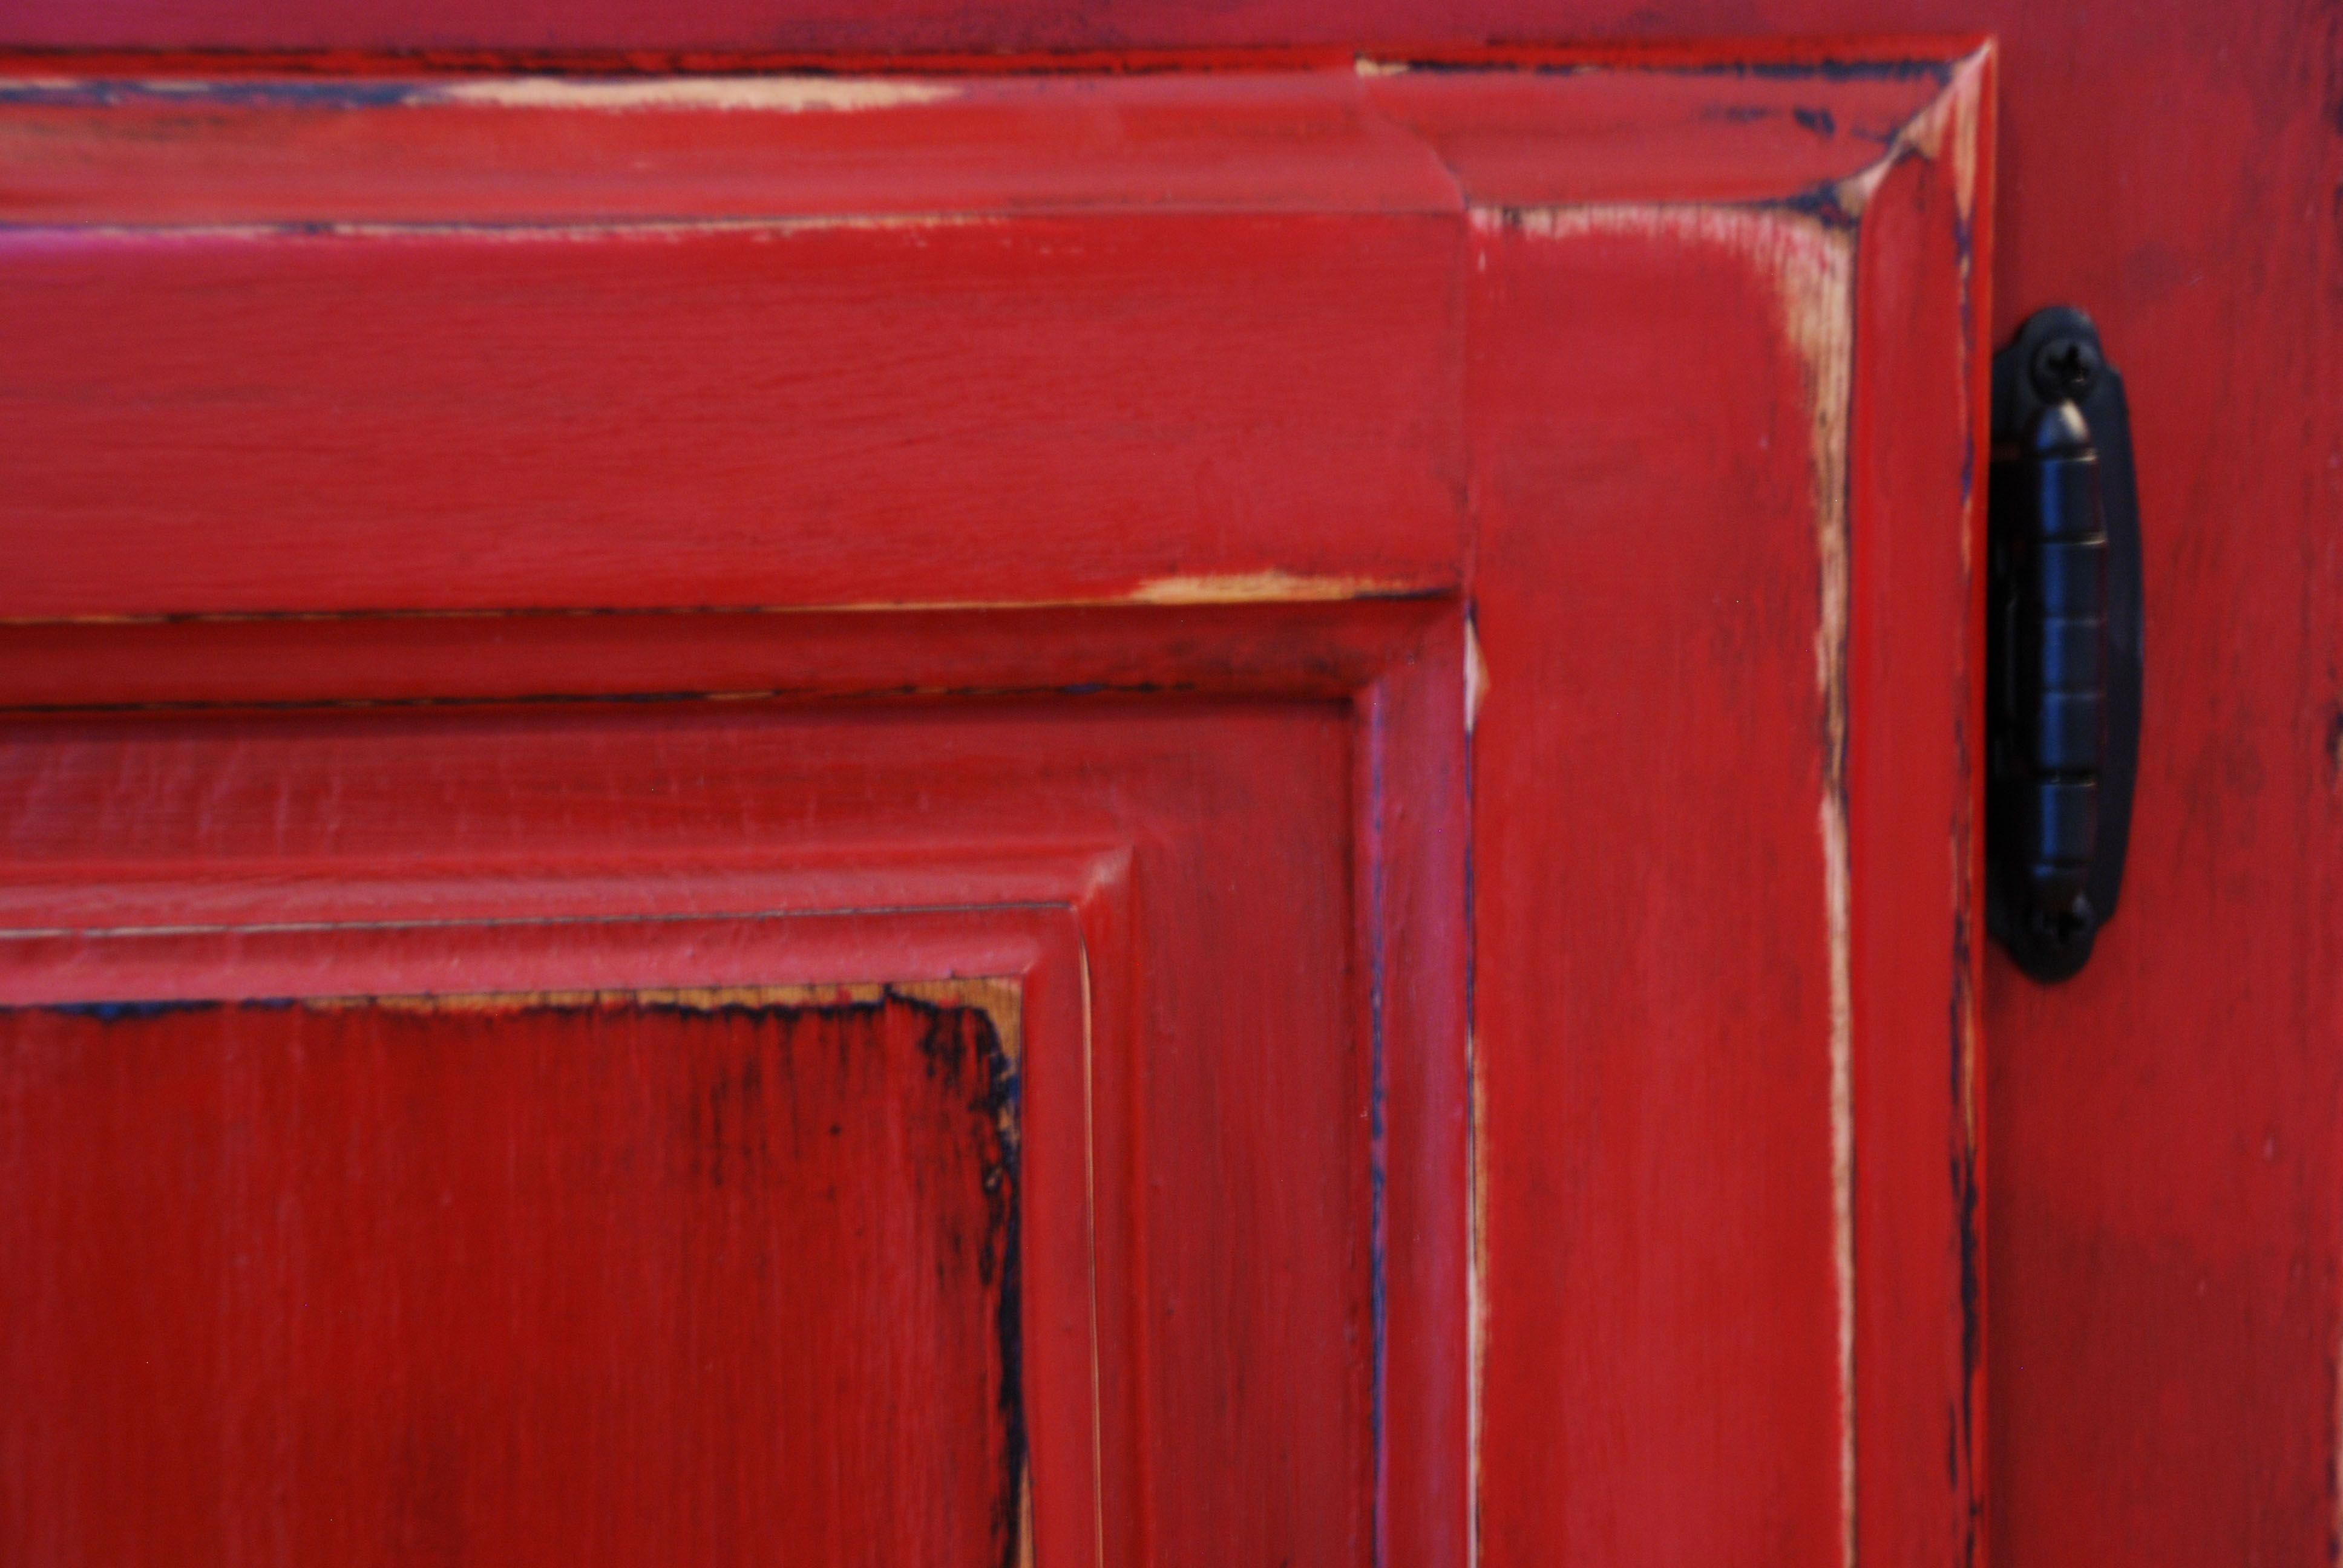 red distressed furniture - Google Search   Red distressed ...